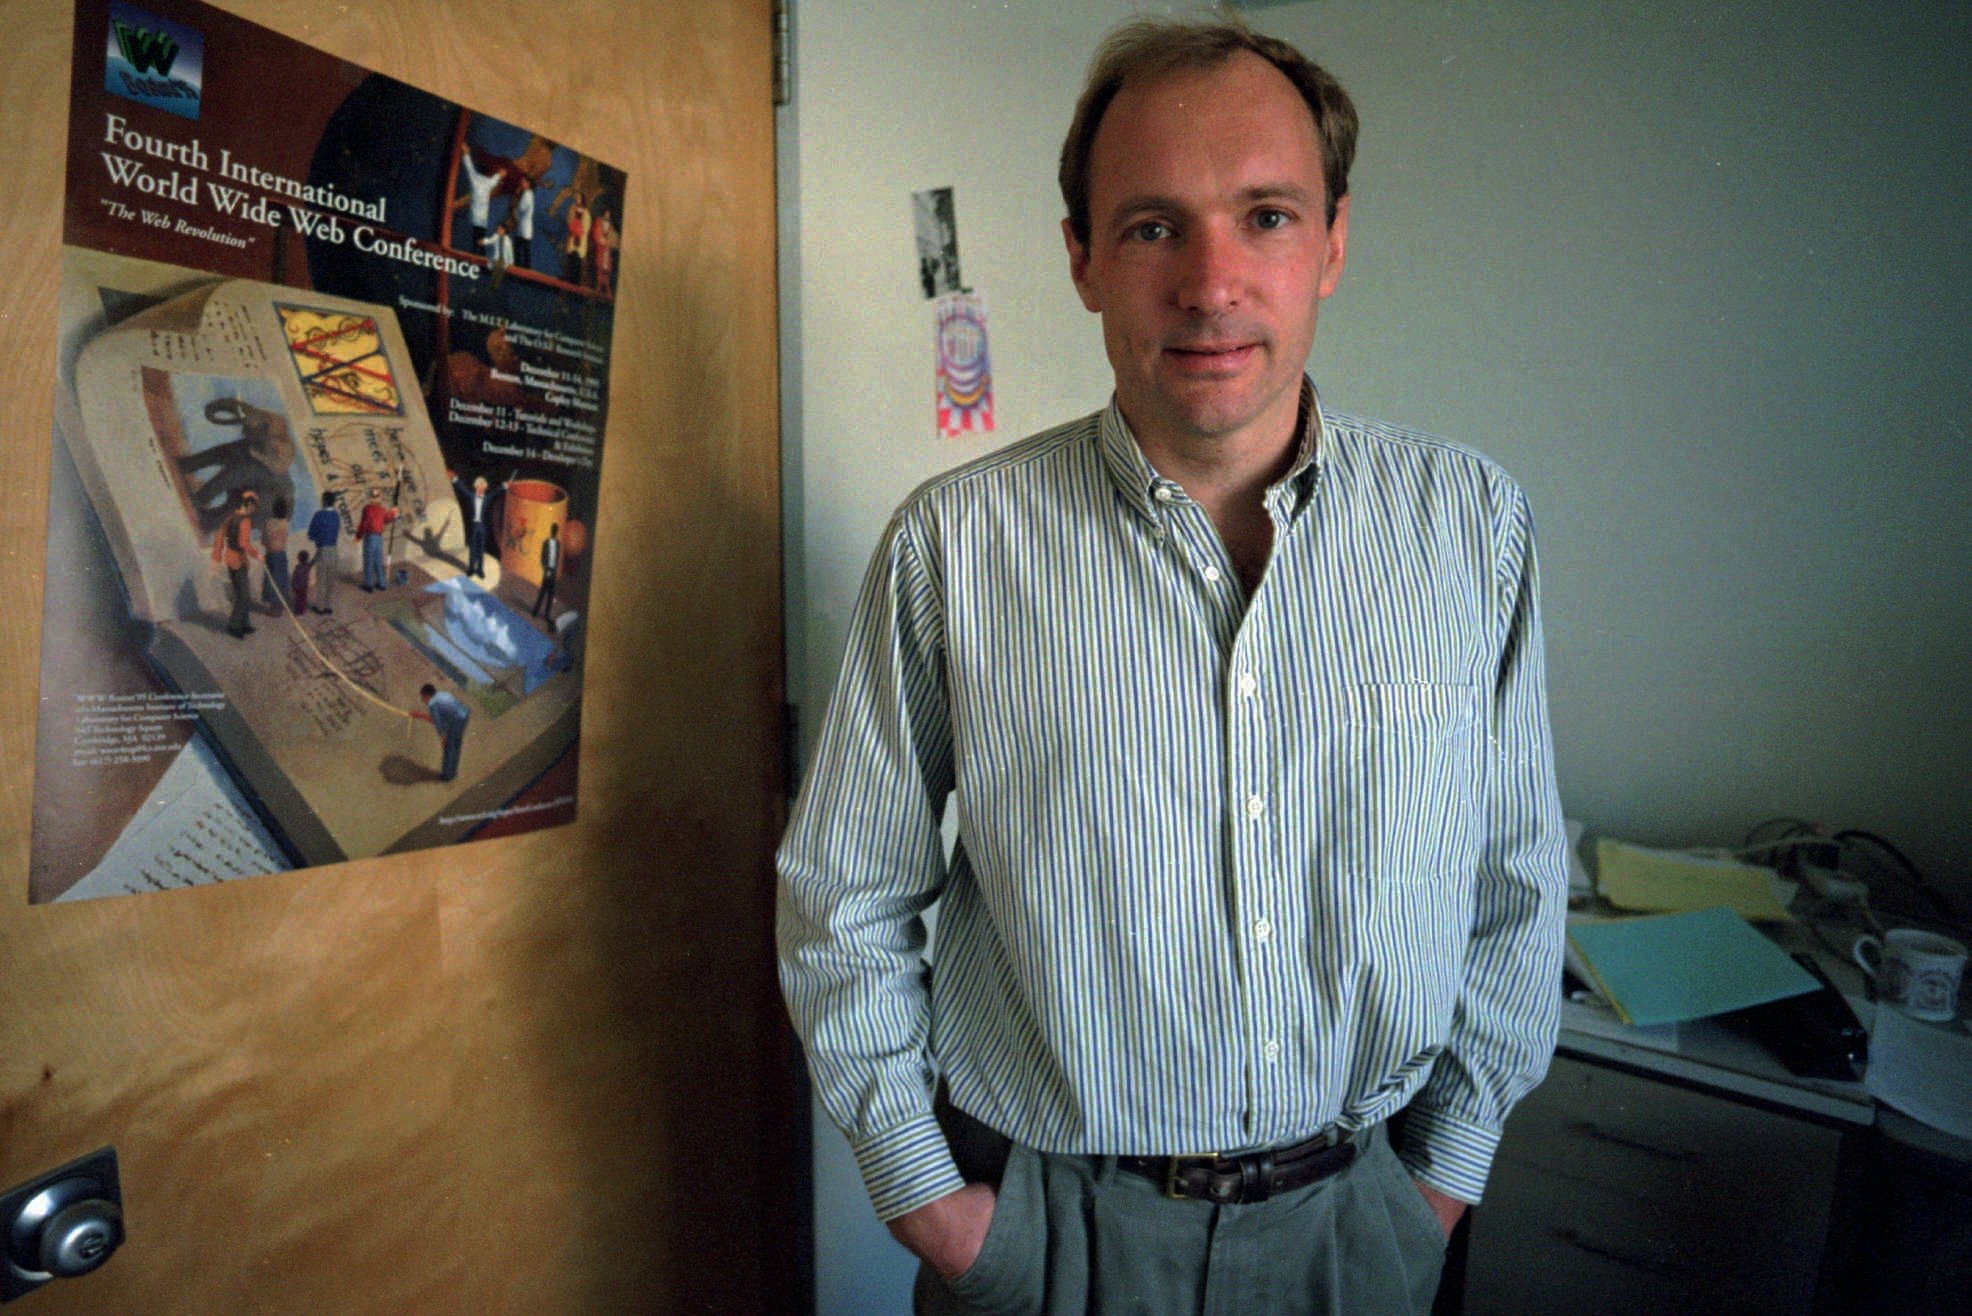 World Wide Web was born on this day 28 years ago